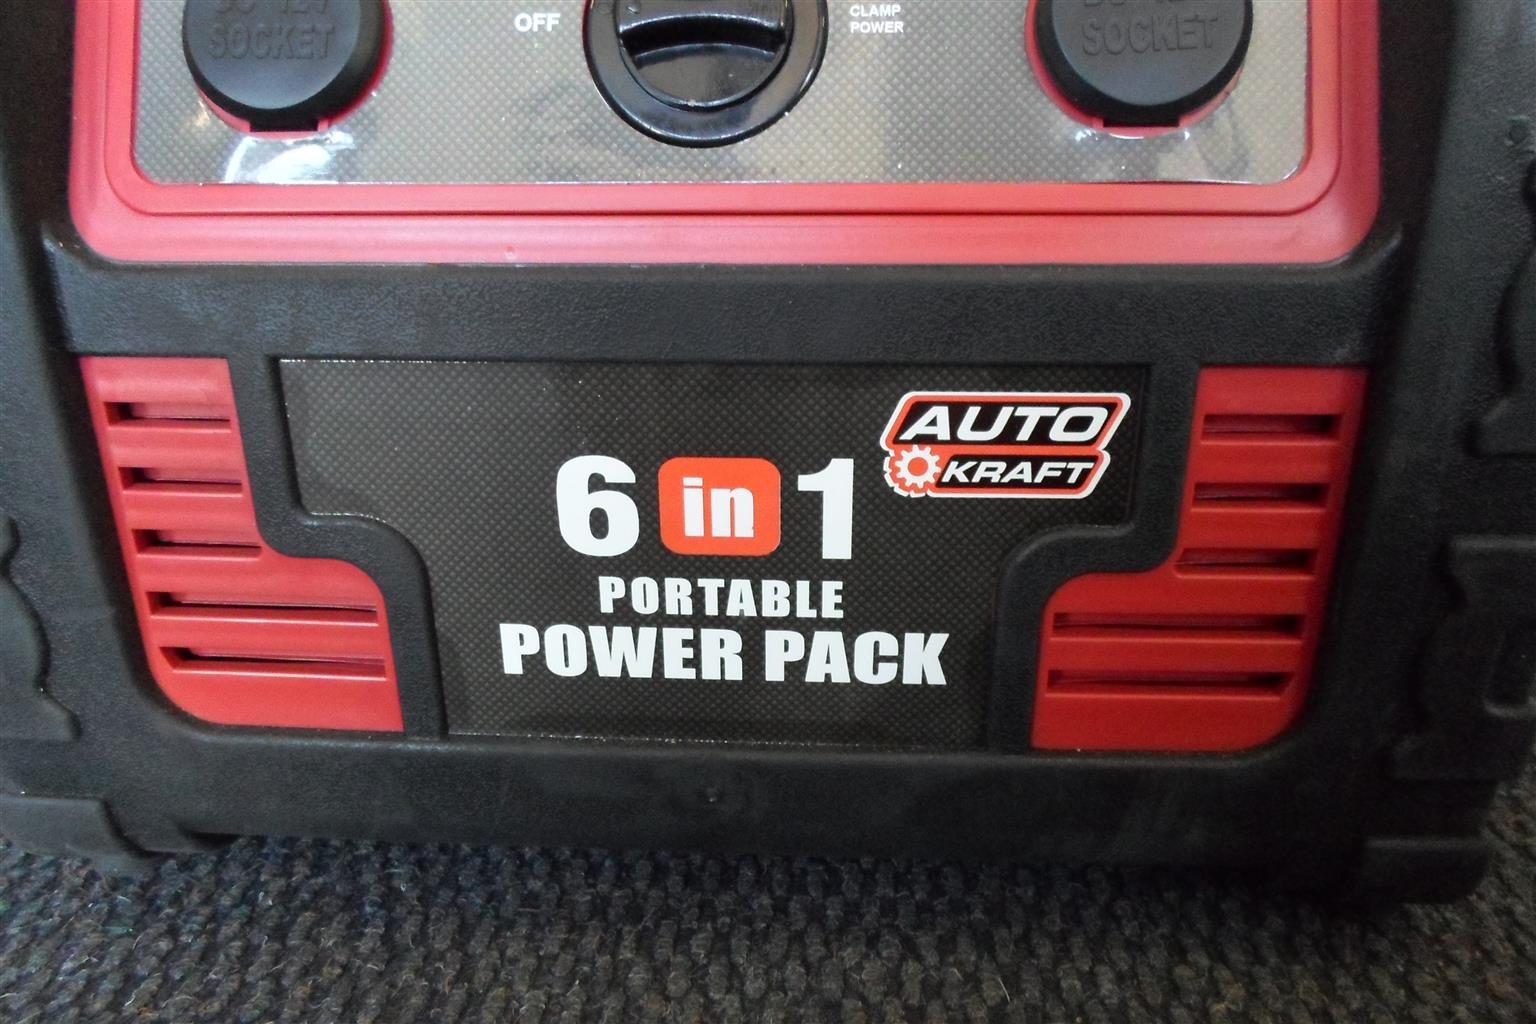 Auto Kraft 6in1 Portable Power Pack